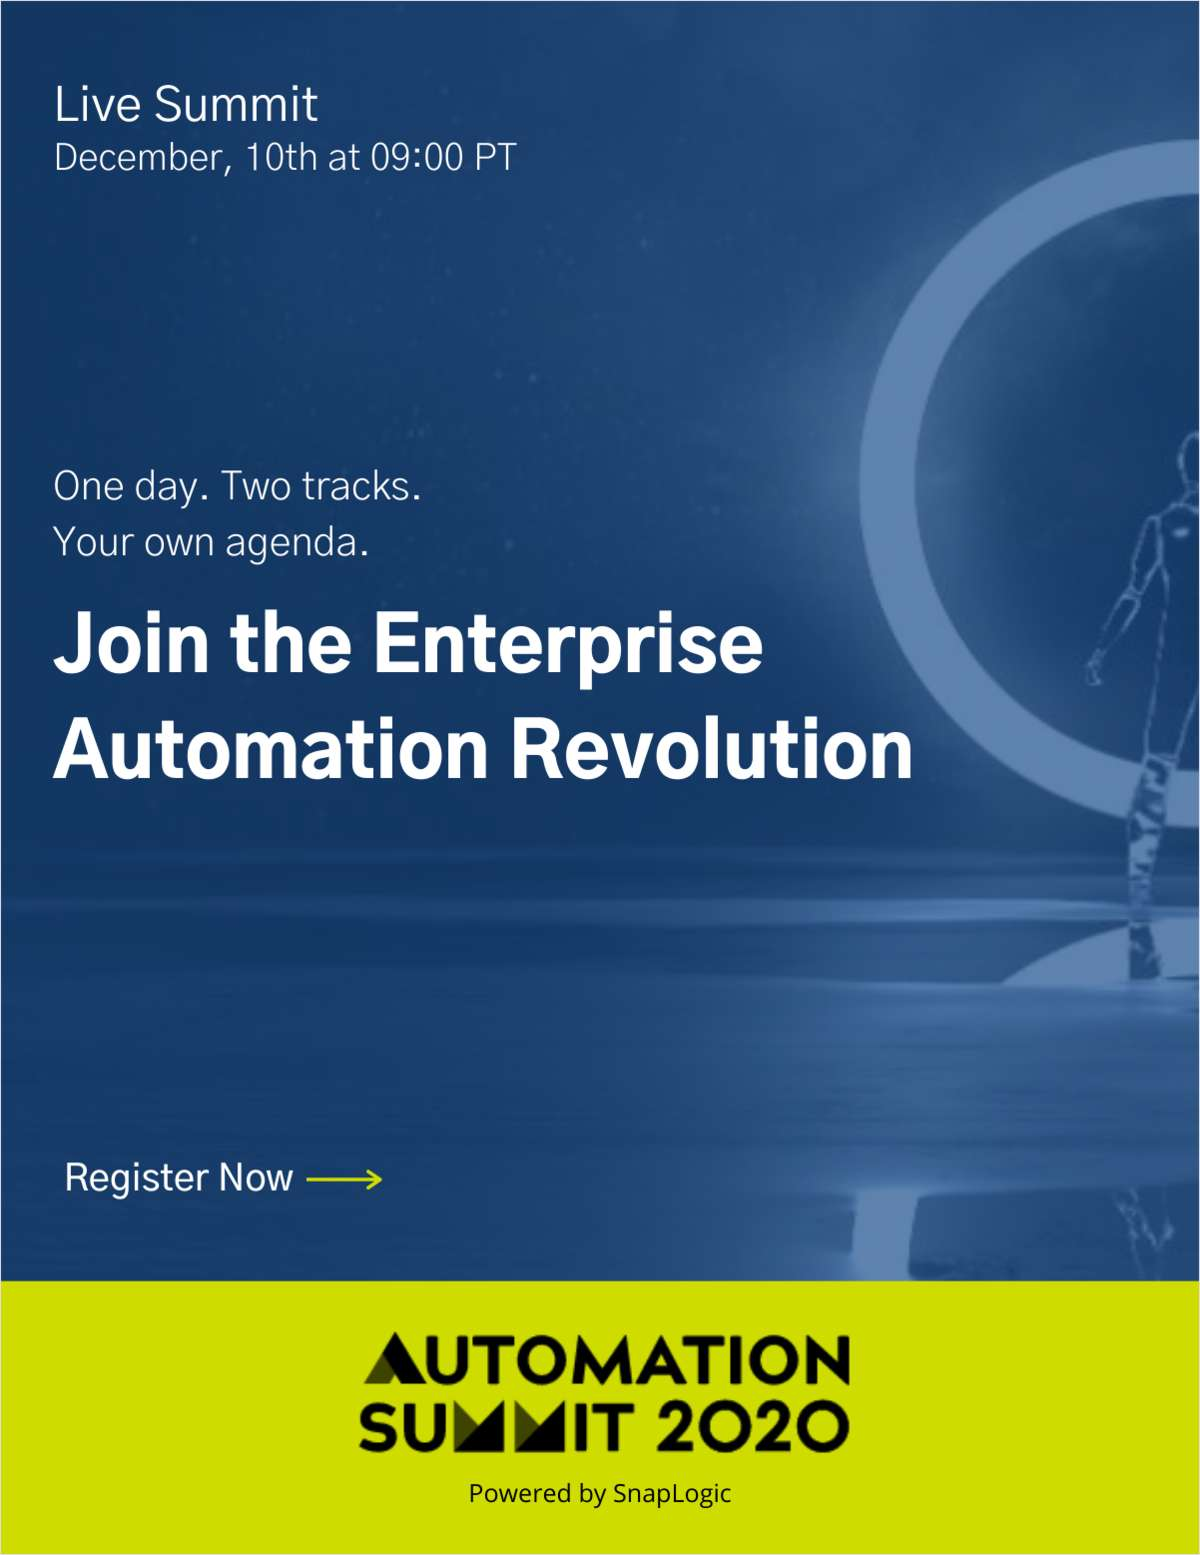 Automation Summit 2020